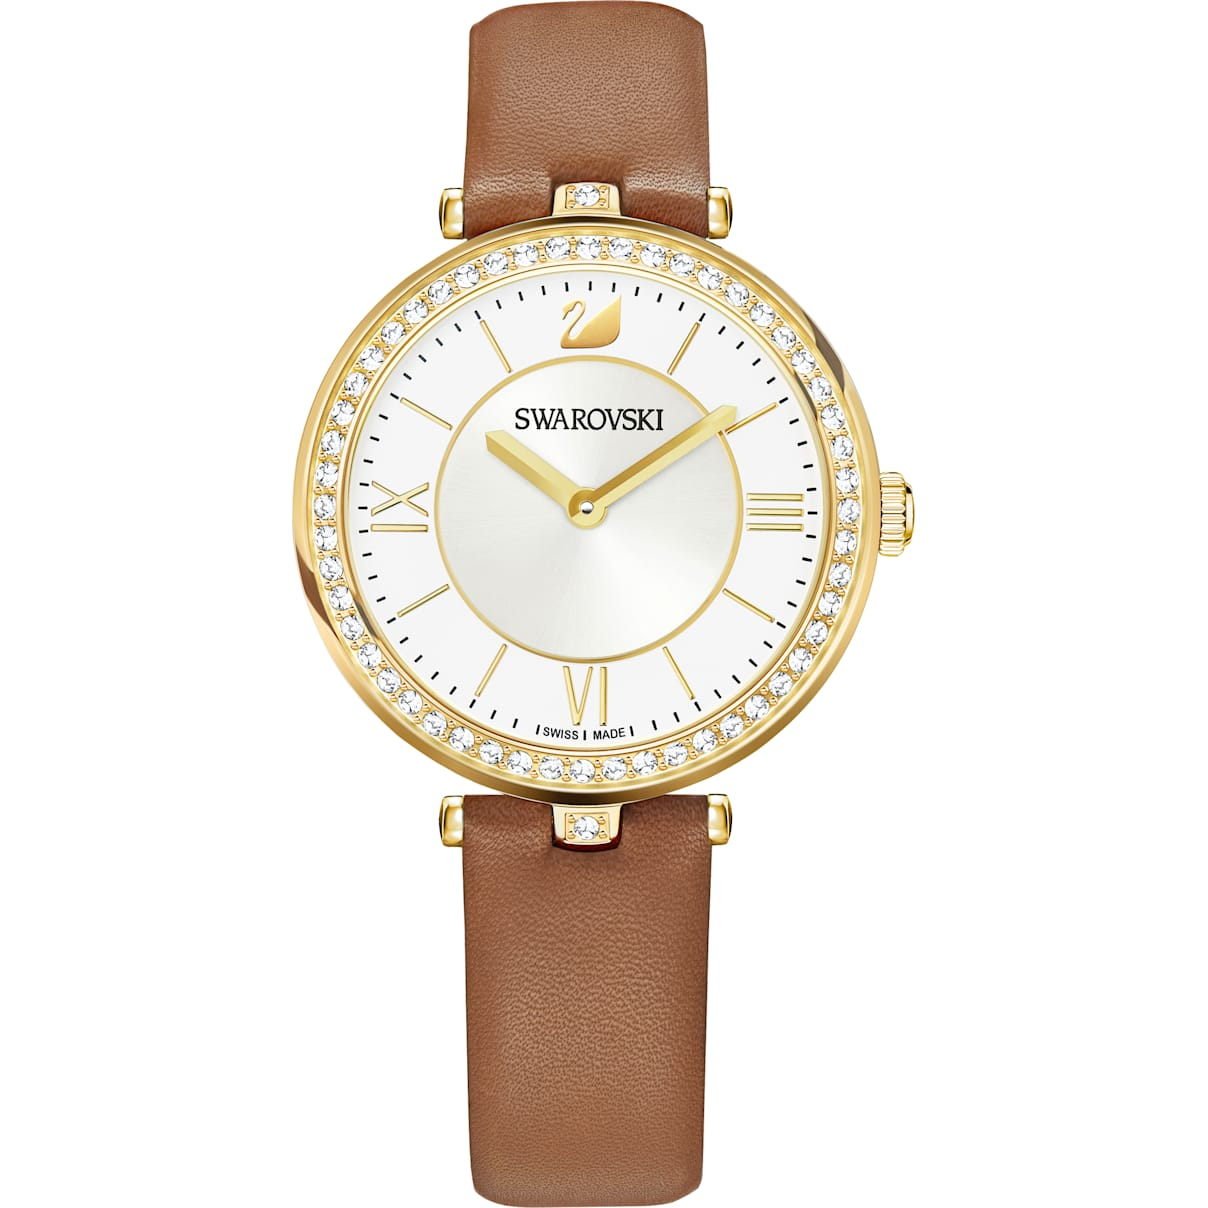 Swarovski Aila Dressy Lady Watch, Leather strap, Brown, Gold-tone PVD